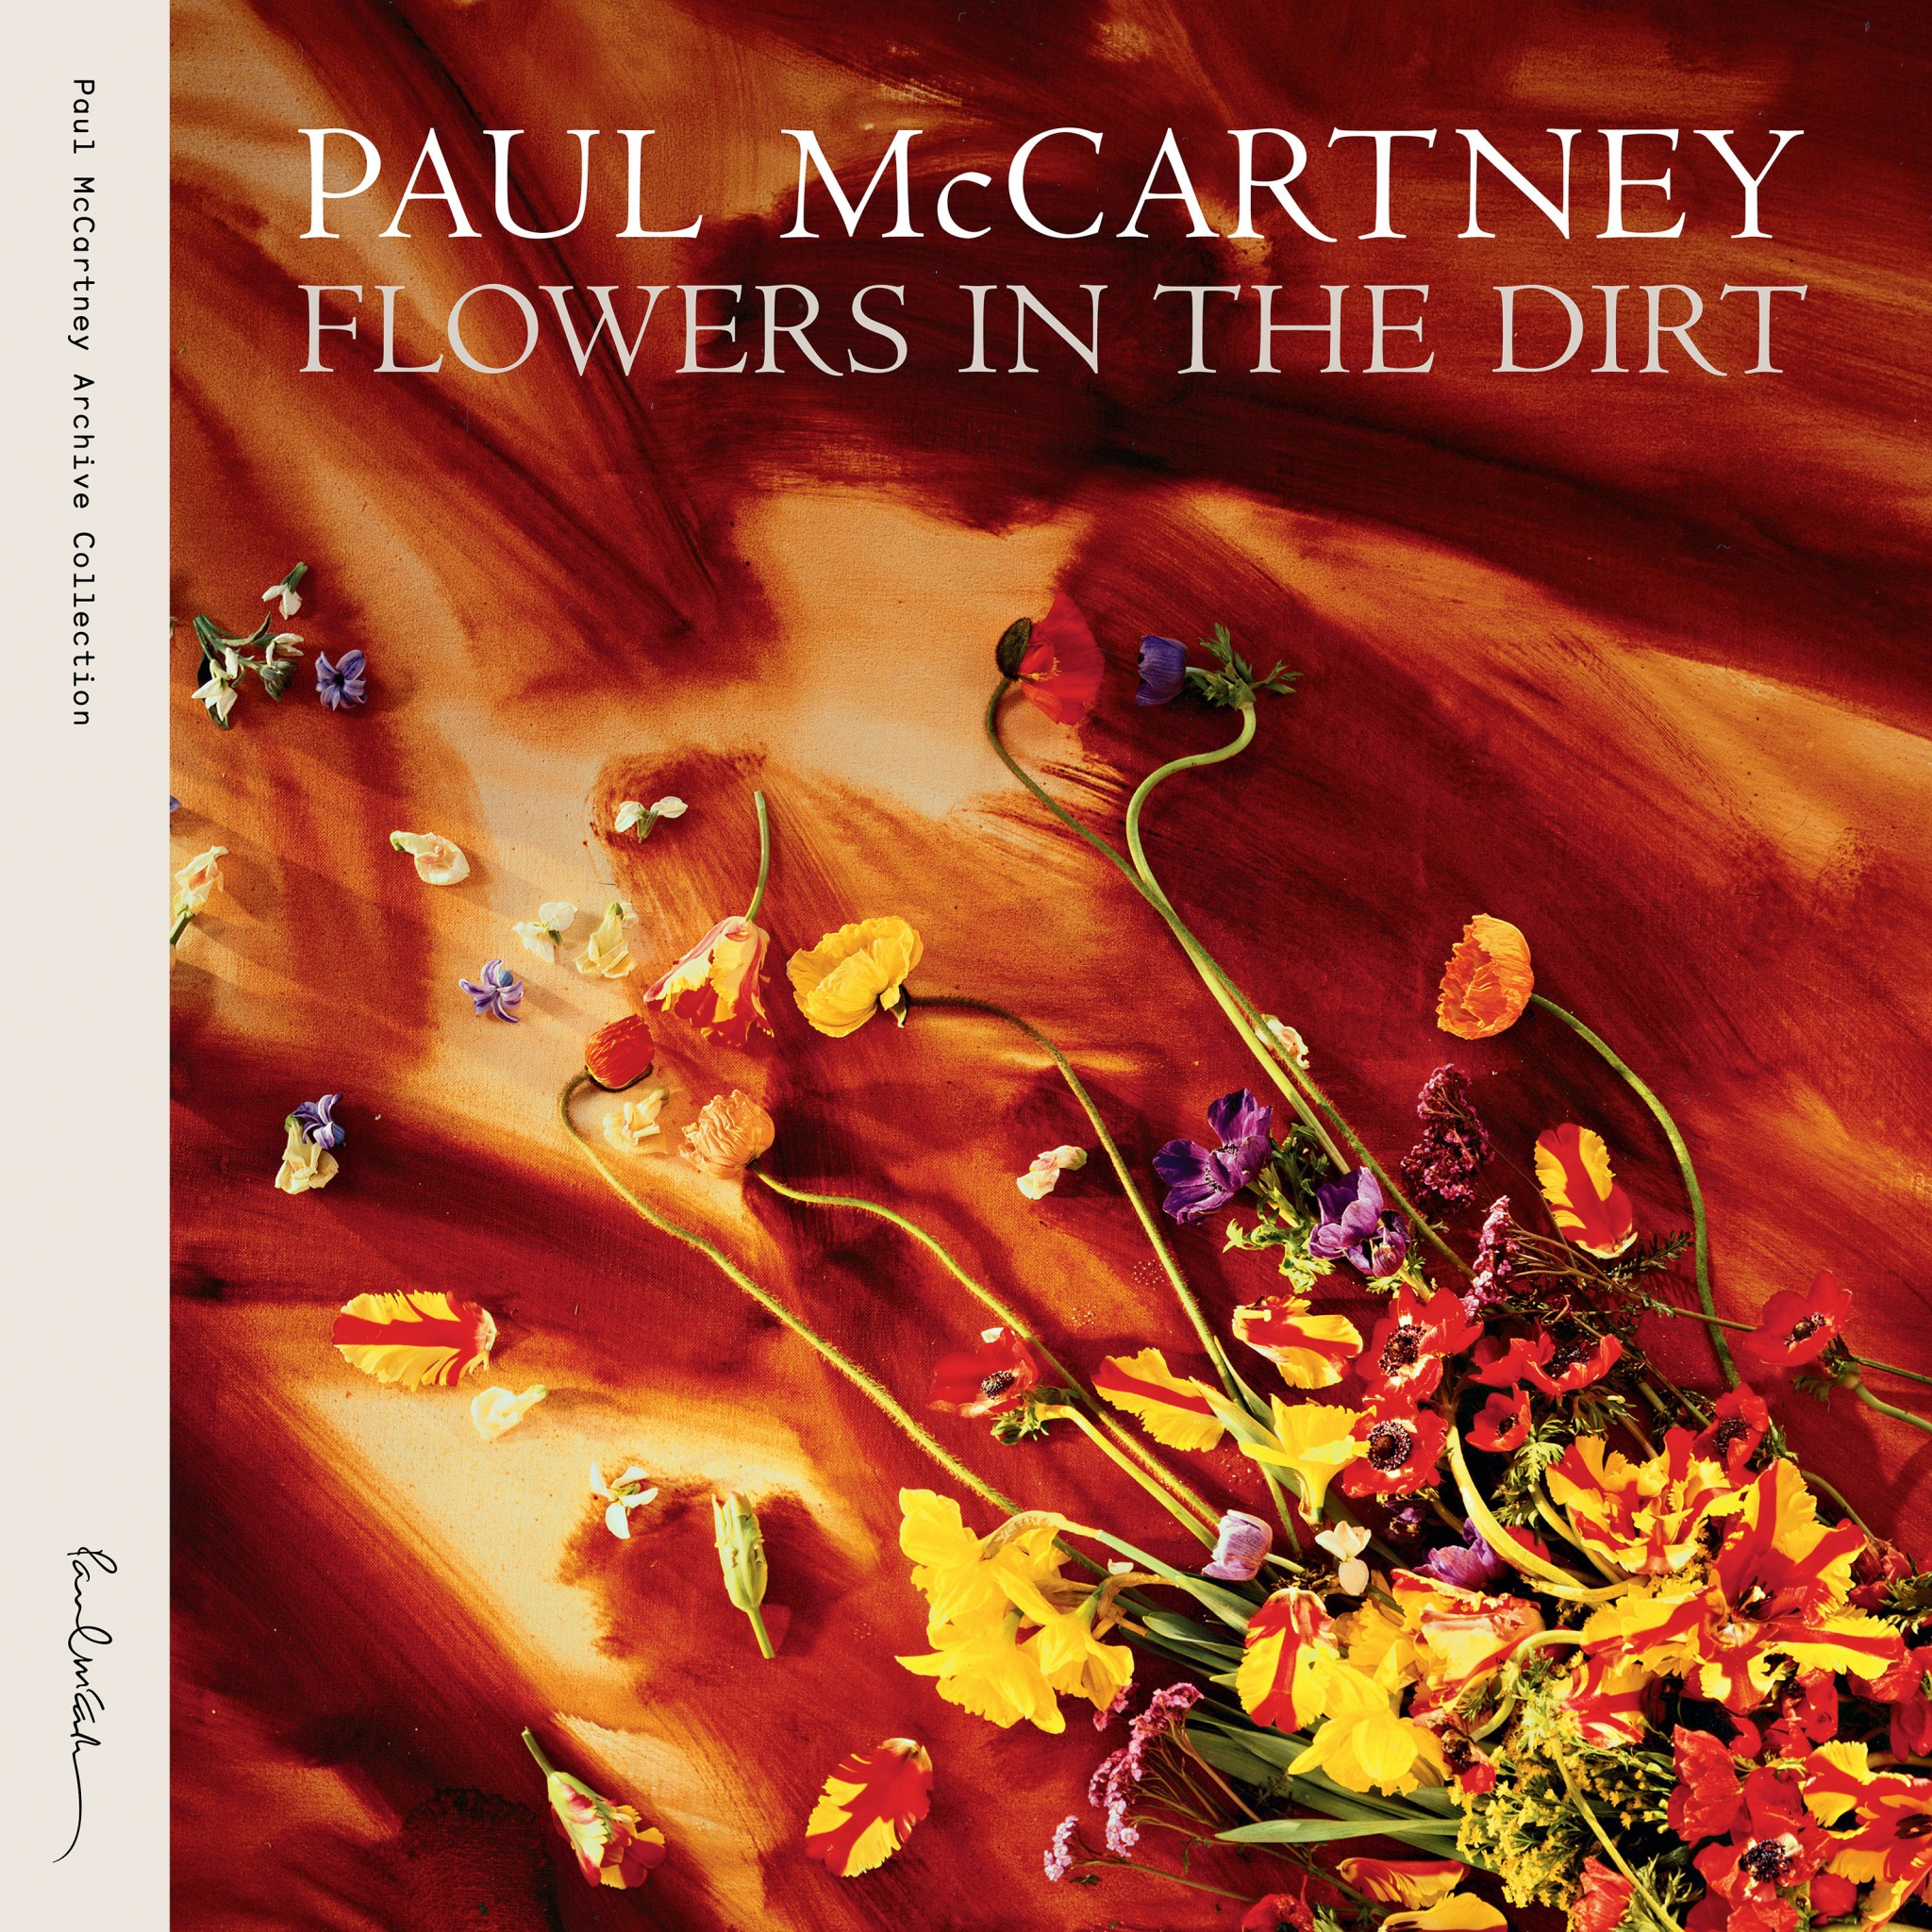 paul-mccartney-flowers-in-the-dirt-cover-art